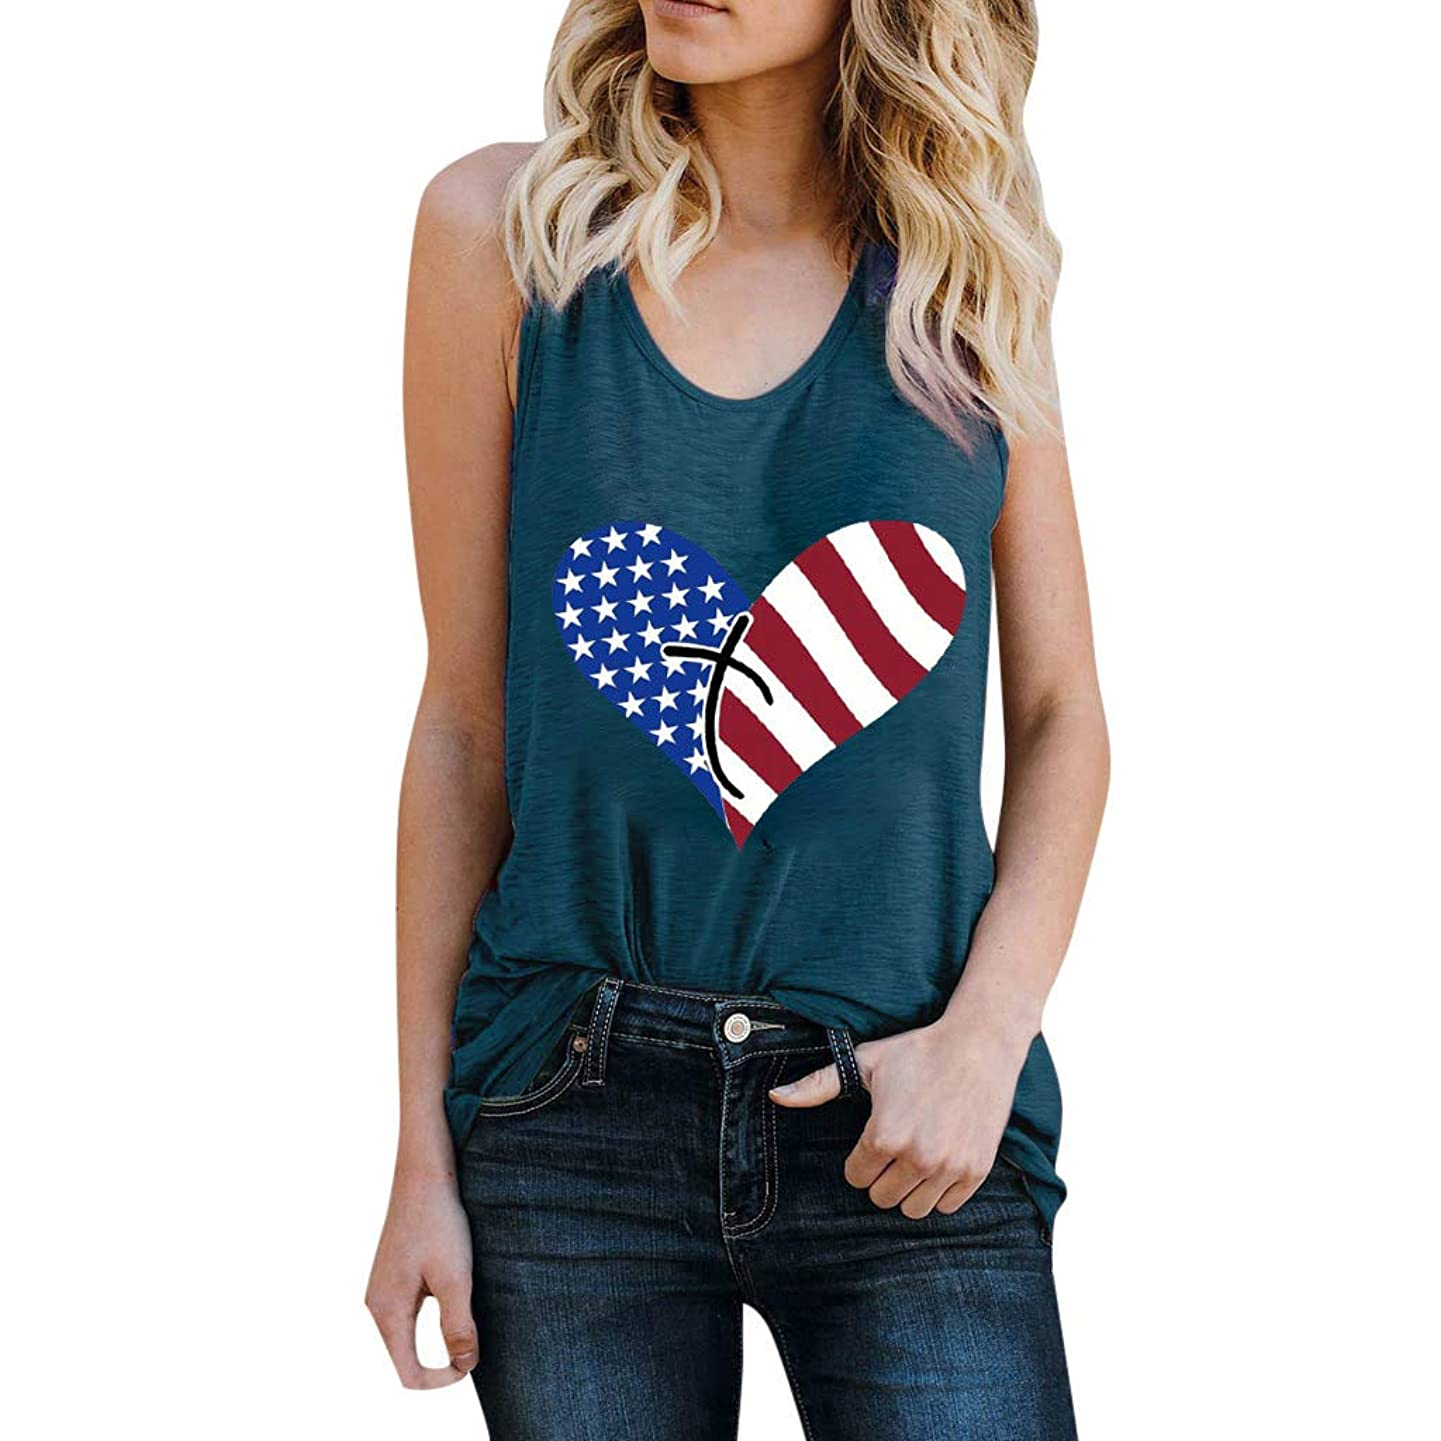 CCOOfhhc Independence Day,Summer Women Tops American Flag Print Casual Tank Tops Raceback Round Neck Tees Shirt